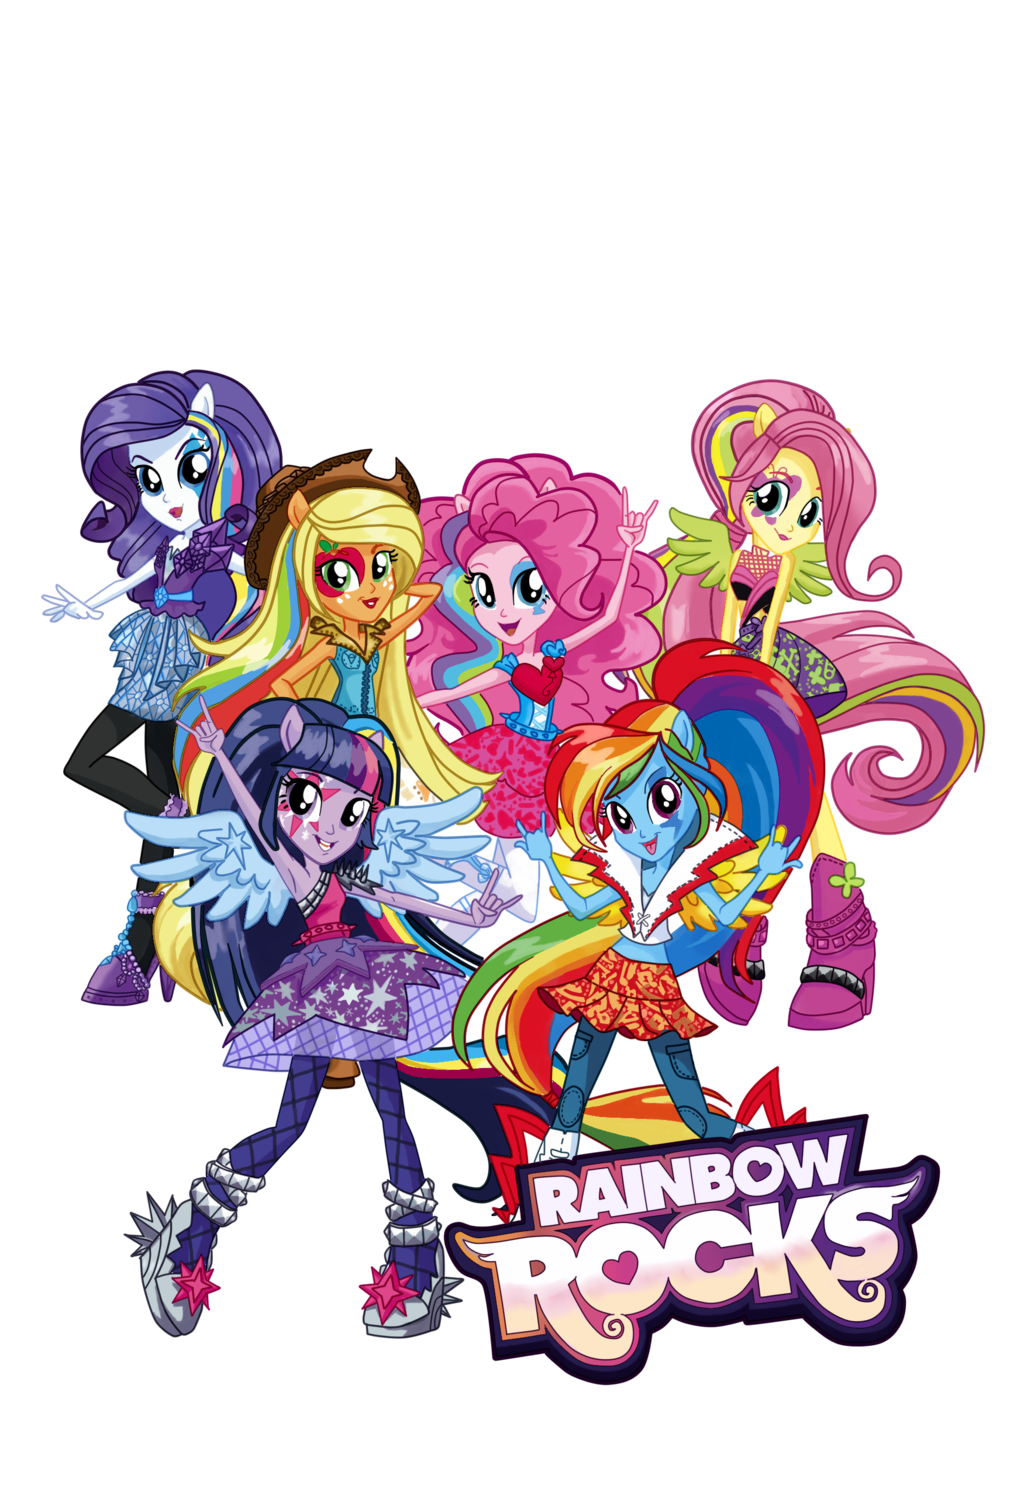 Mlp Equestria Girls Rainbow Rocks By Vaniaeditors On Deviantart My Little Pony Wallpaper Little Pony My Little Pony Pictures